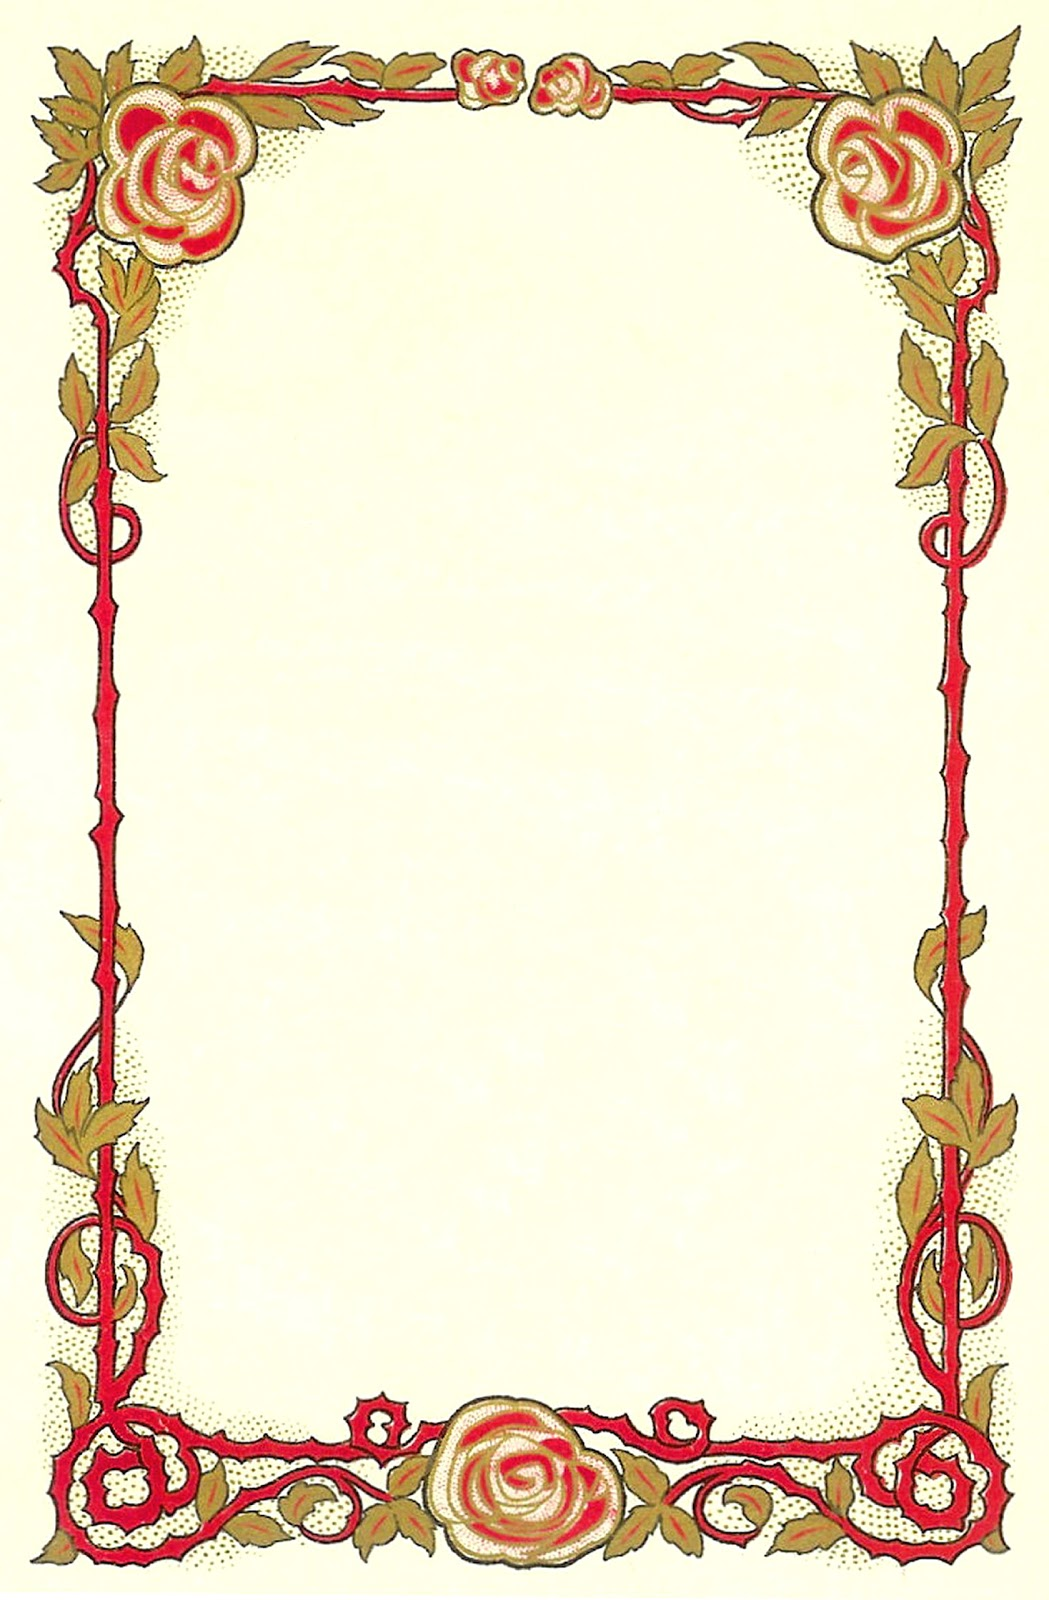 Antique Images: Flower Clip Art: Vintage Graphic of Red Rose Frame.